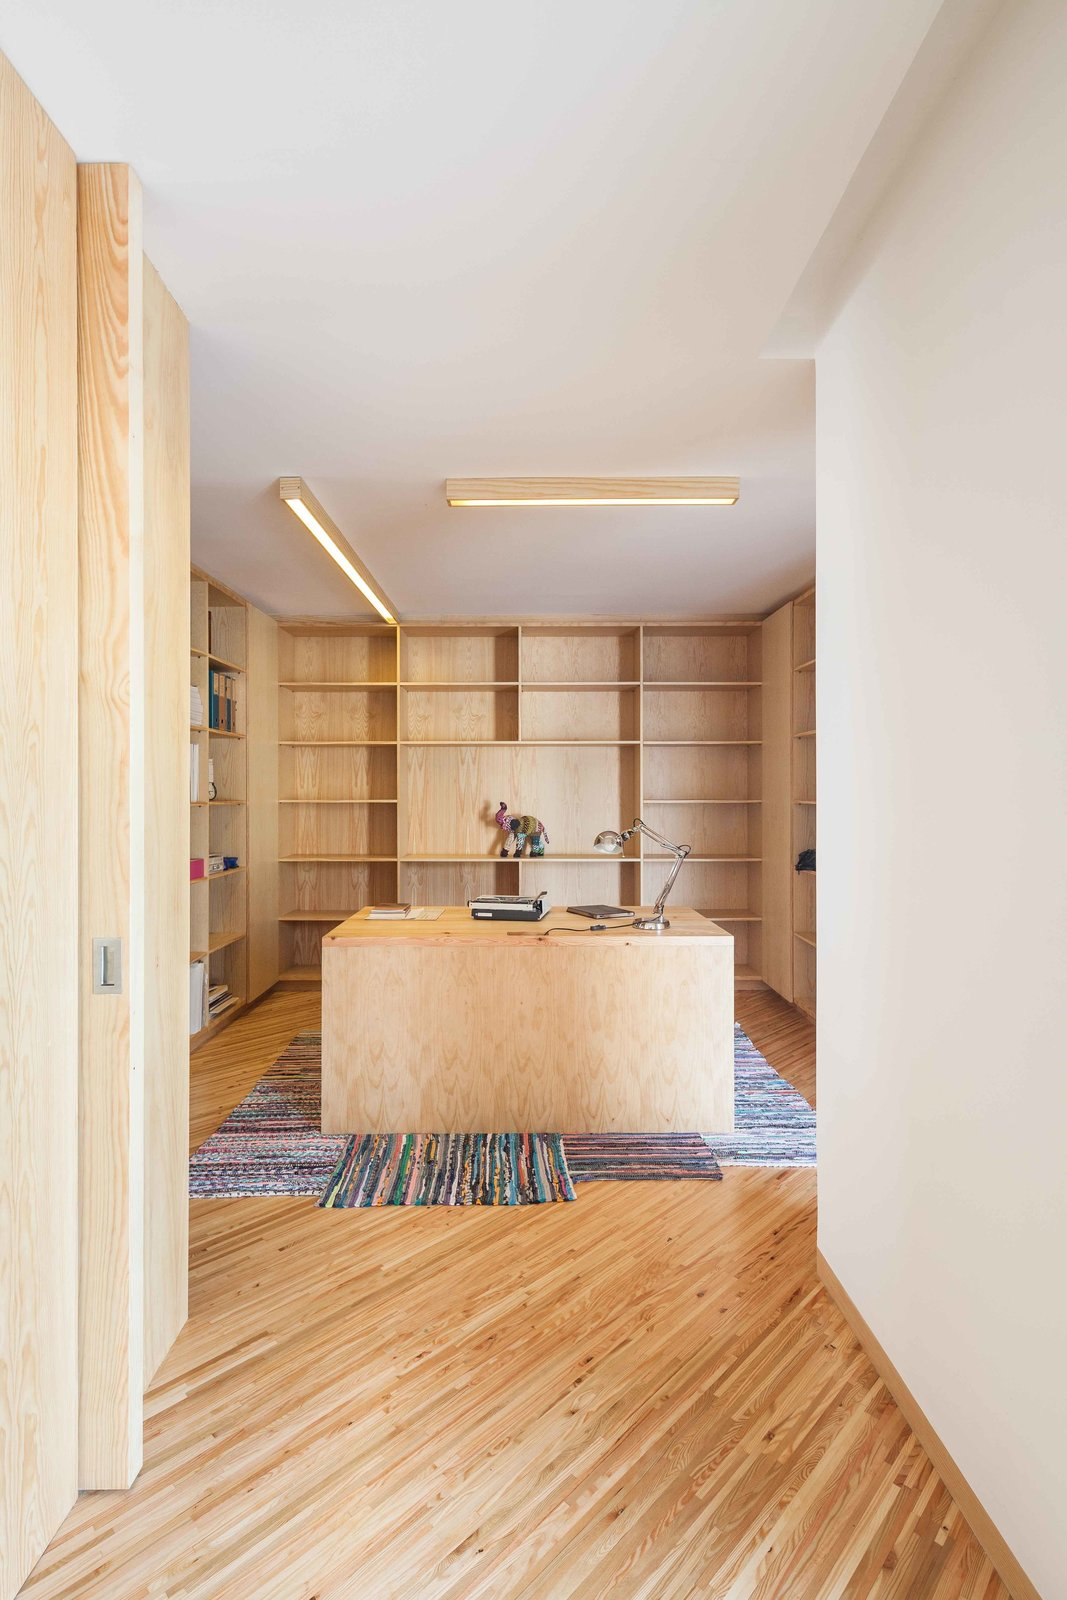 In the study, strip lighting illuminates a desk almost entirely surrounded by built-in bookshelves.  Stuff I like from Lovely Beach House is All About Angles, Stucco, and Wood